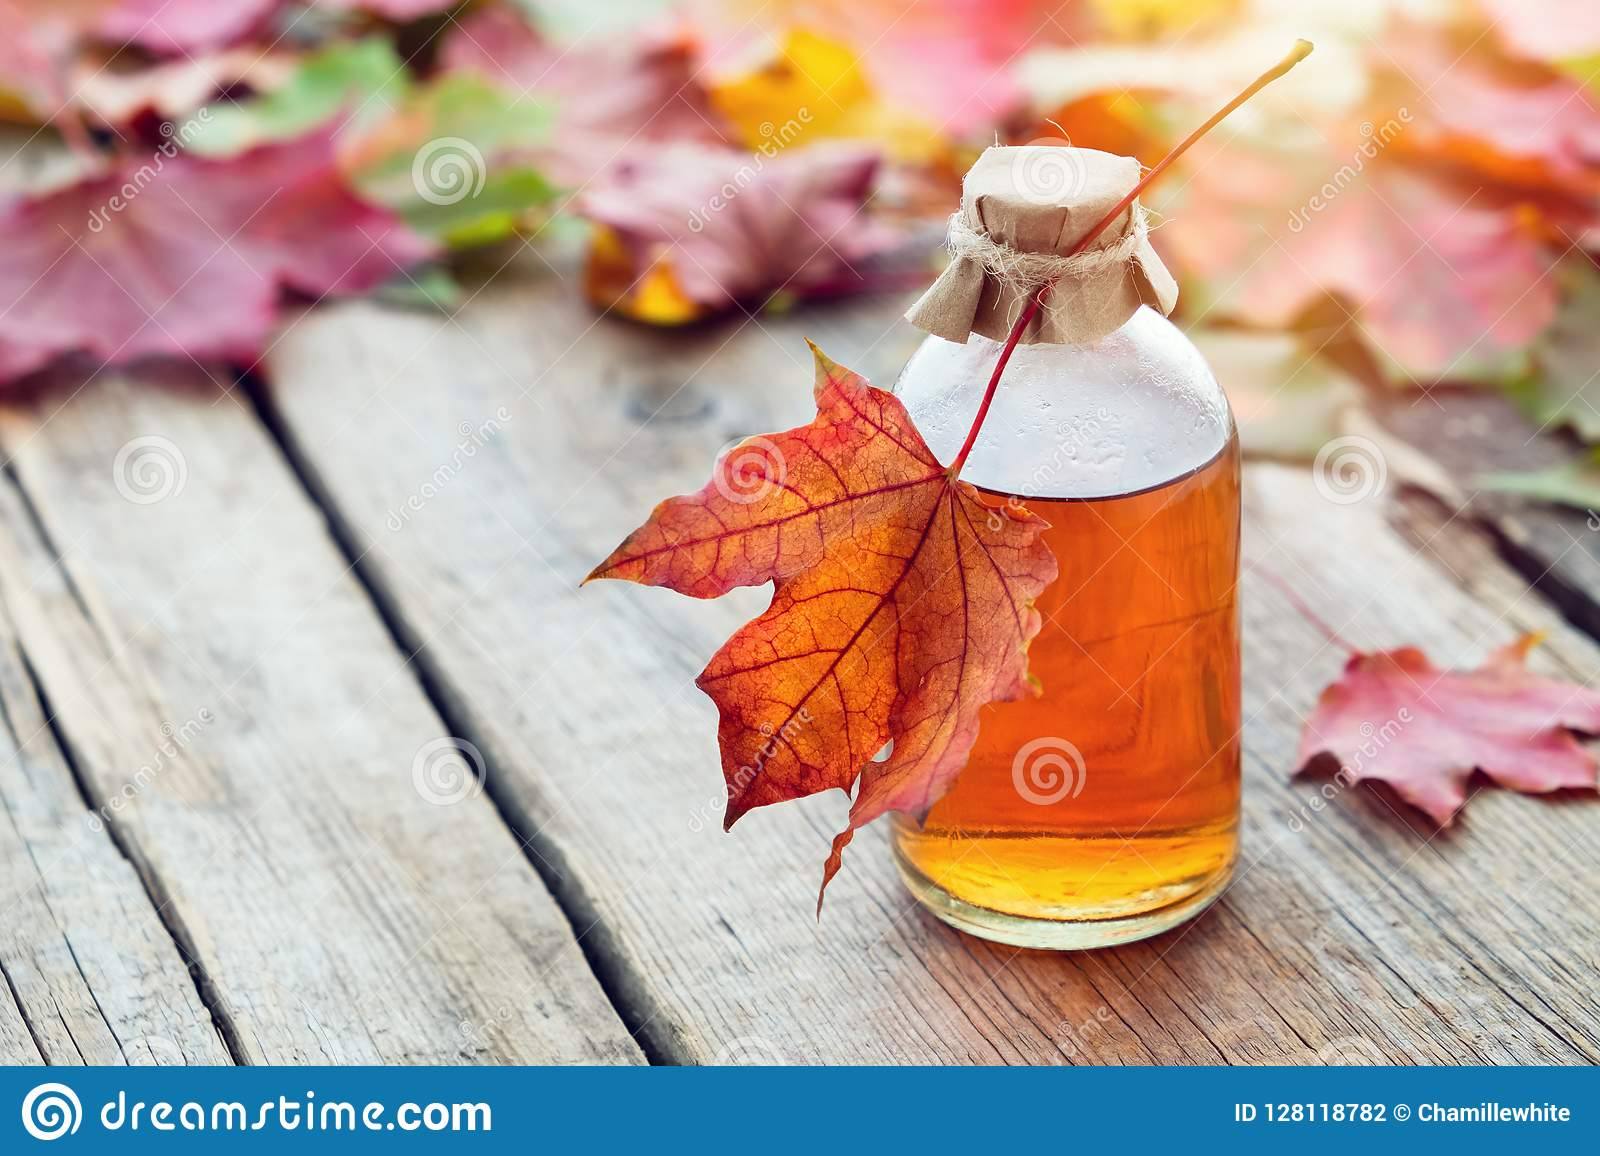 Maple syrup or healthy tincture and maple leaves.